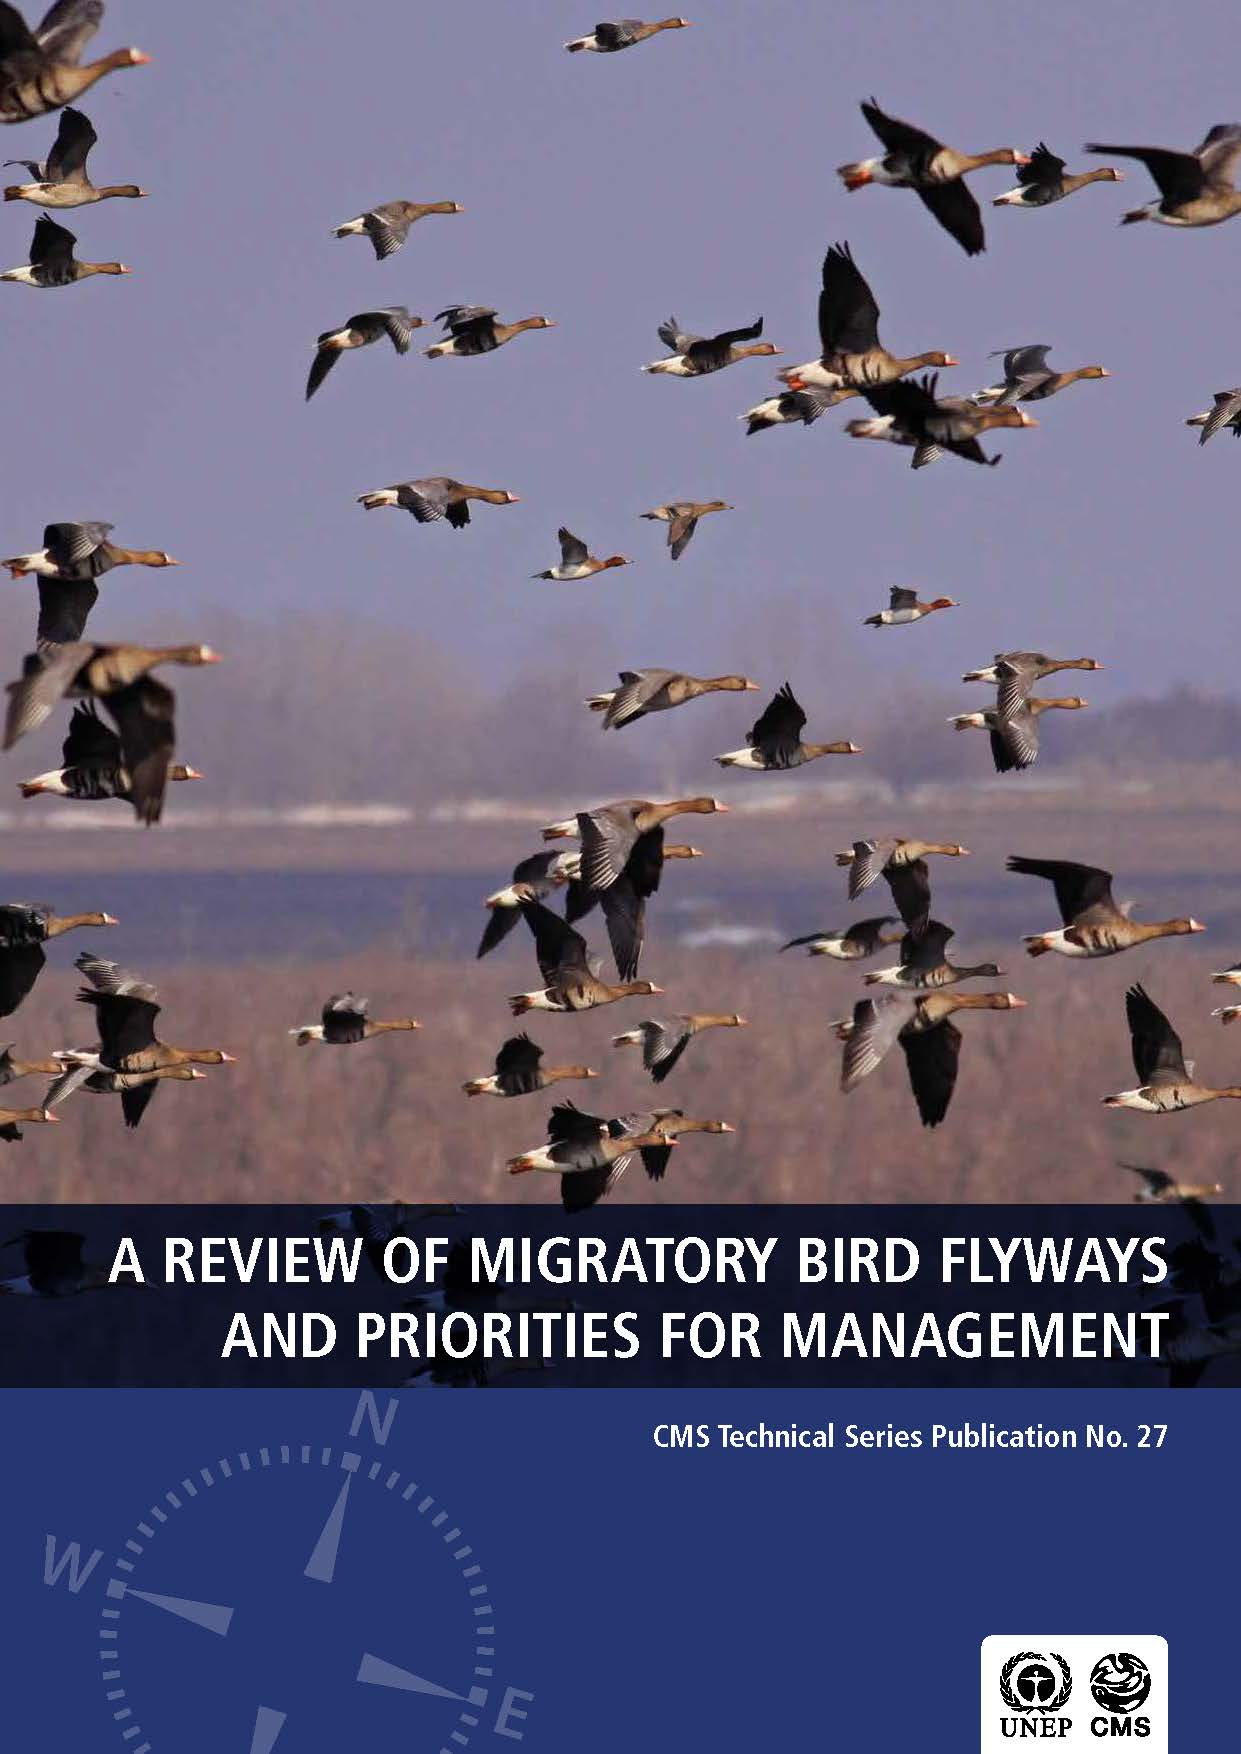 Capa da A review of migratory bird flyways and priorities for management.